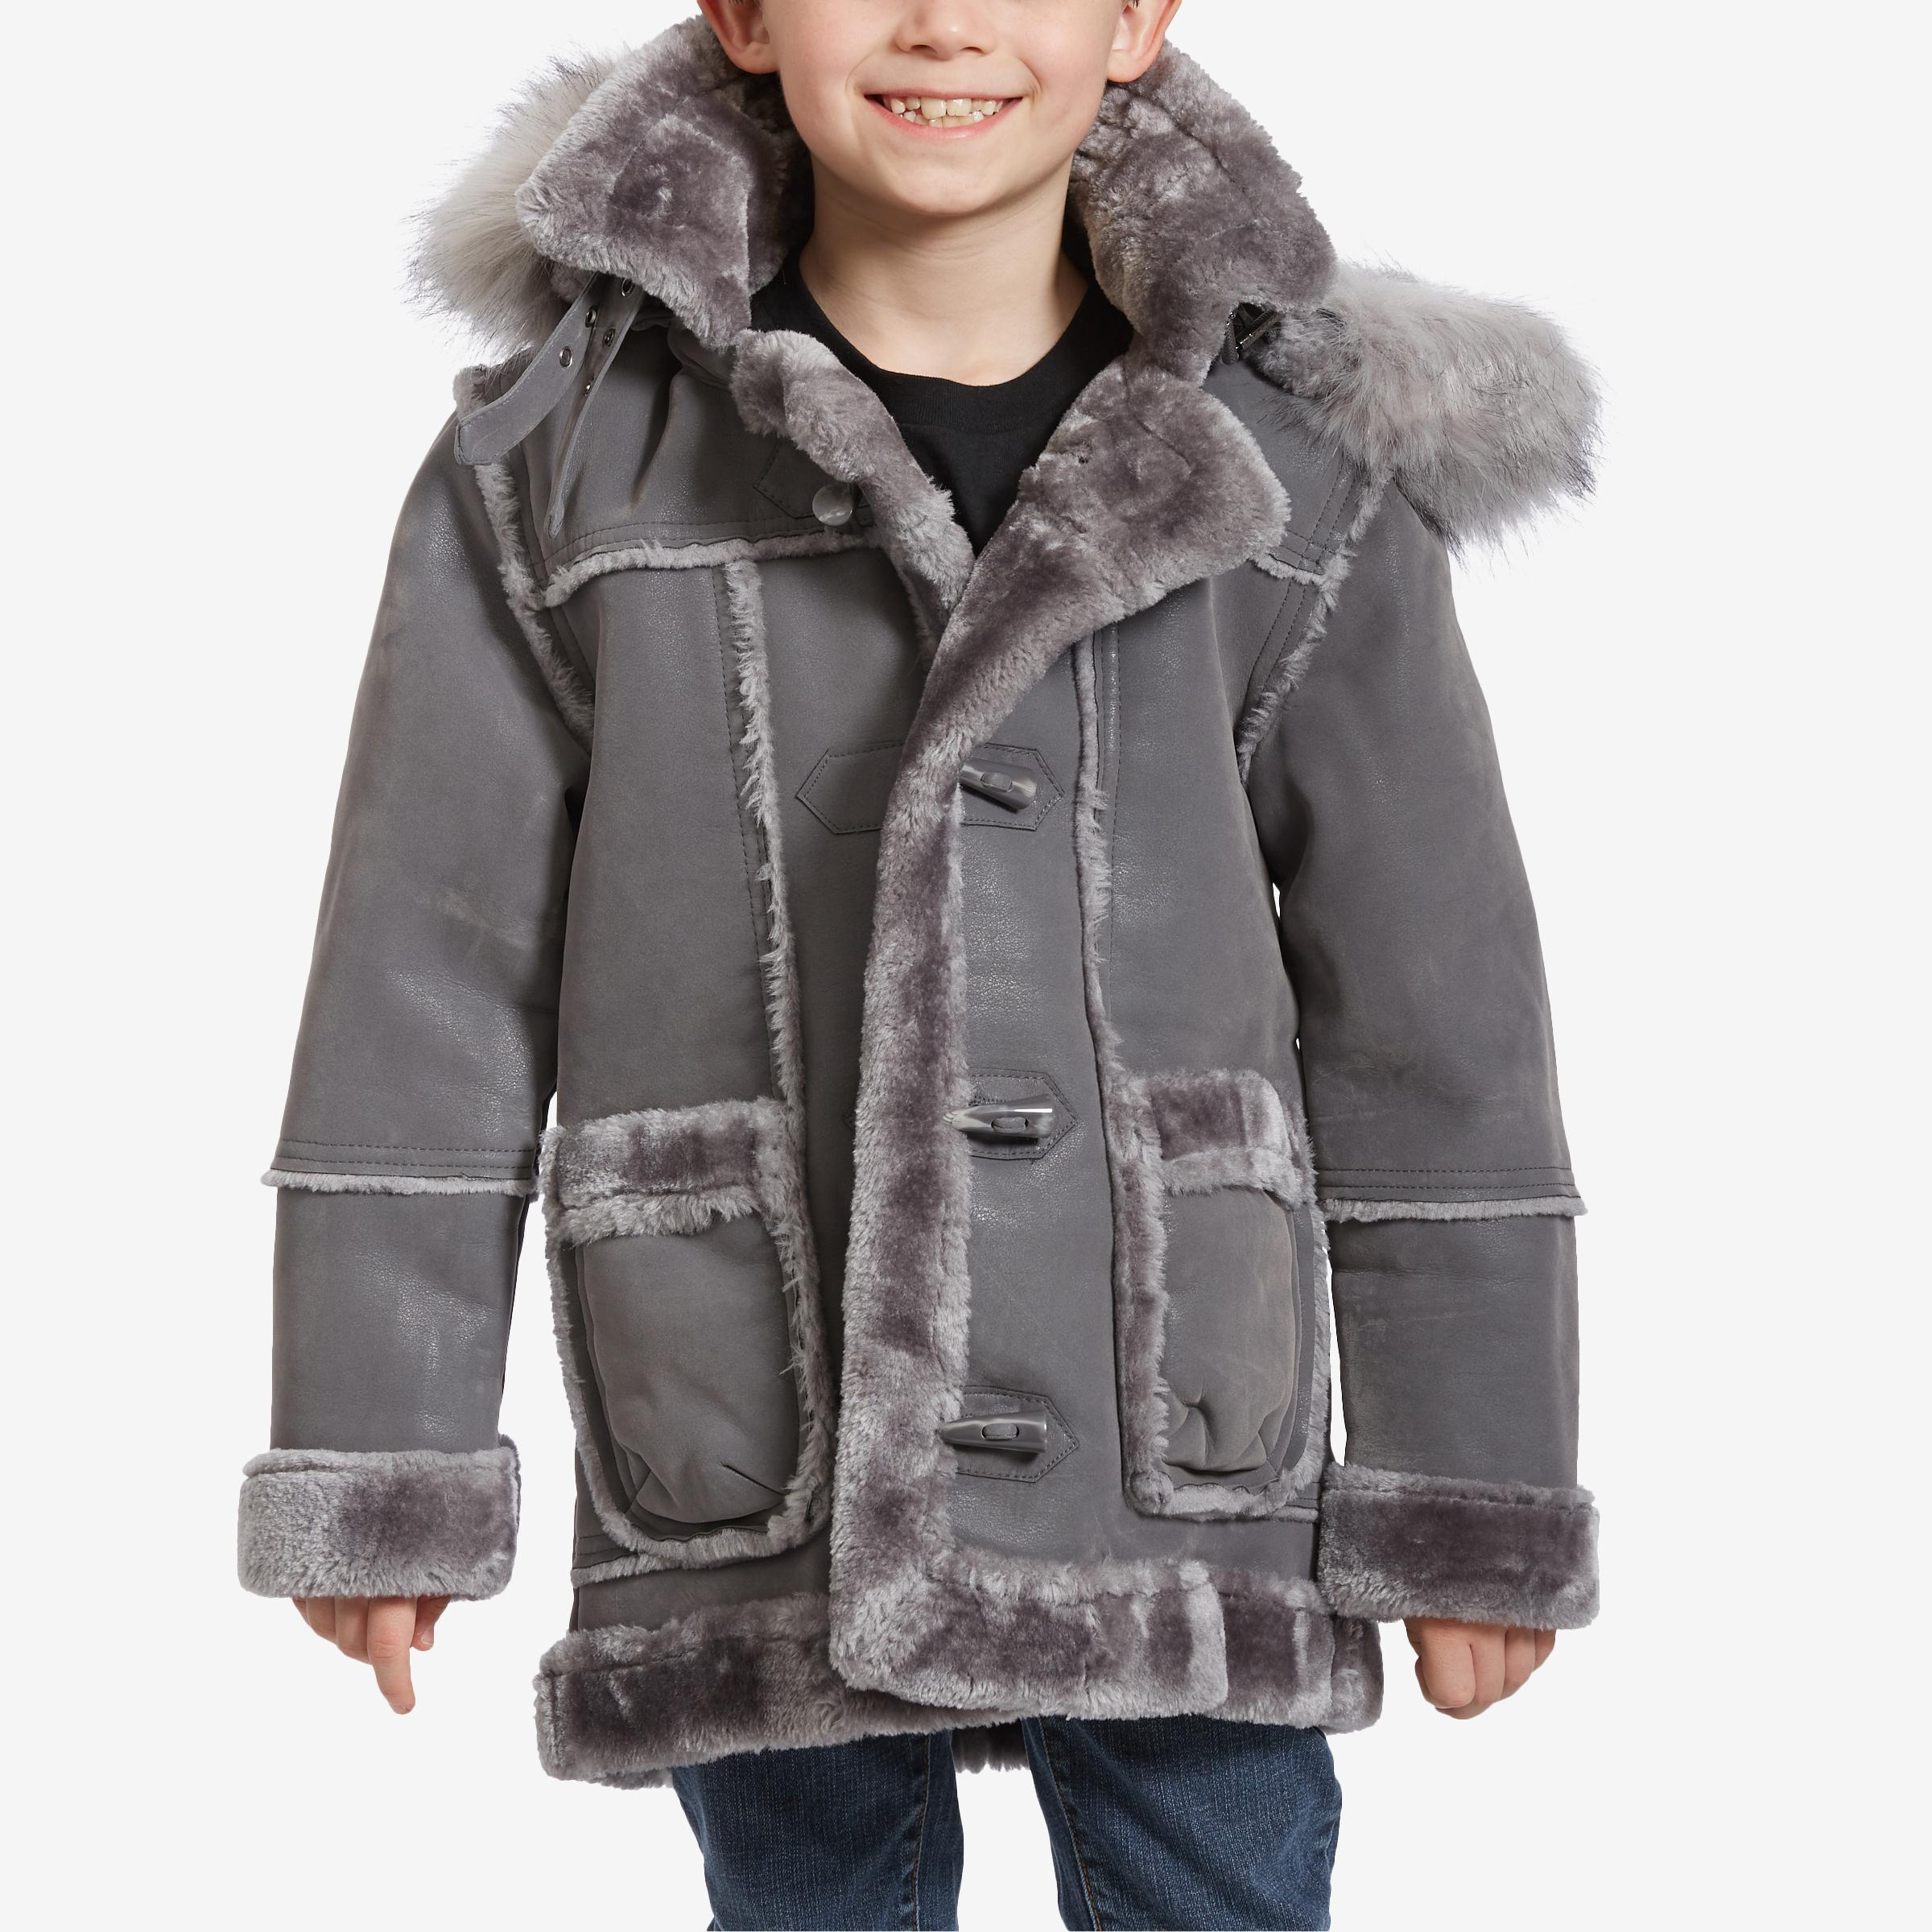 Boy's Preschool Denali Shearling Jacket